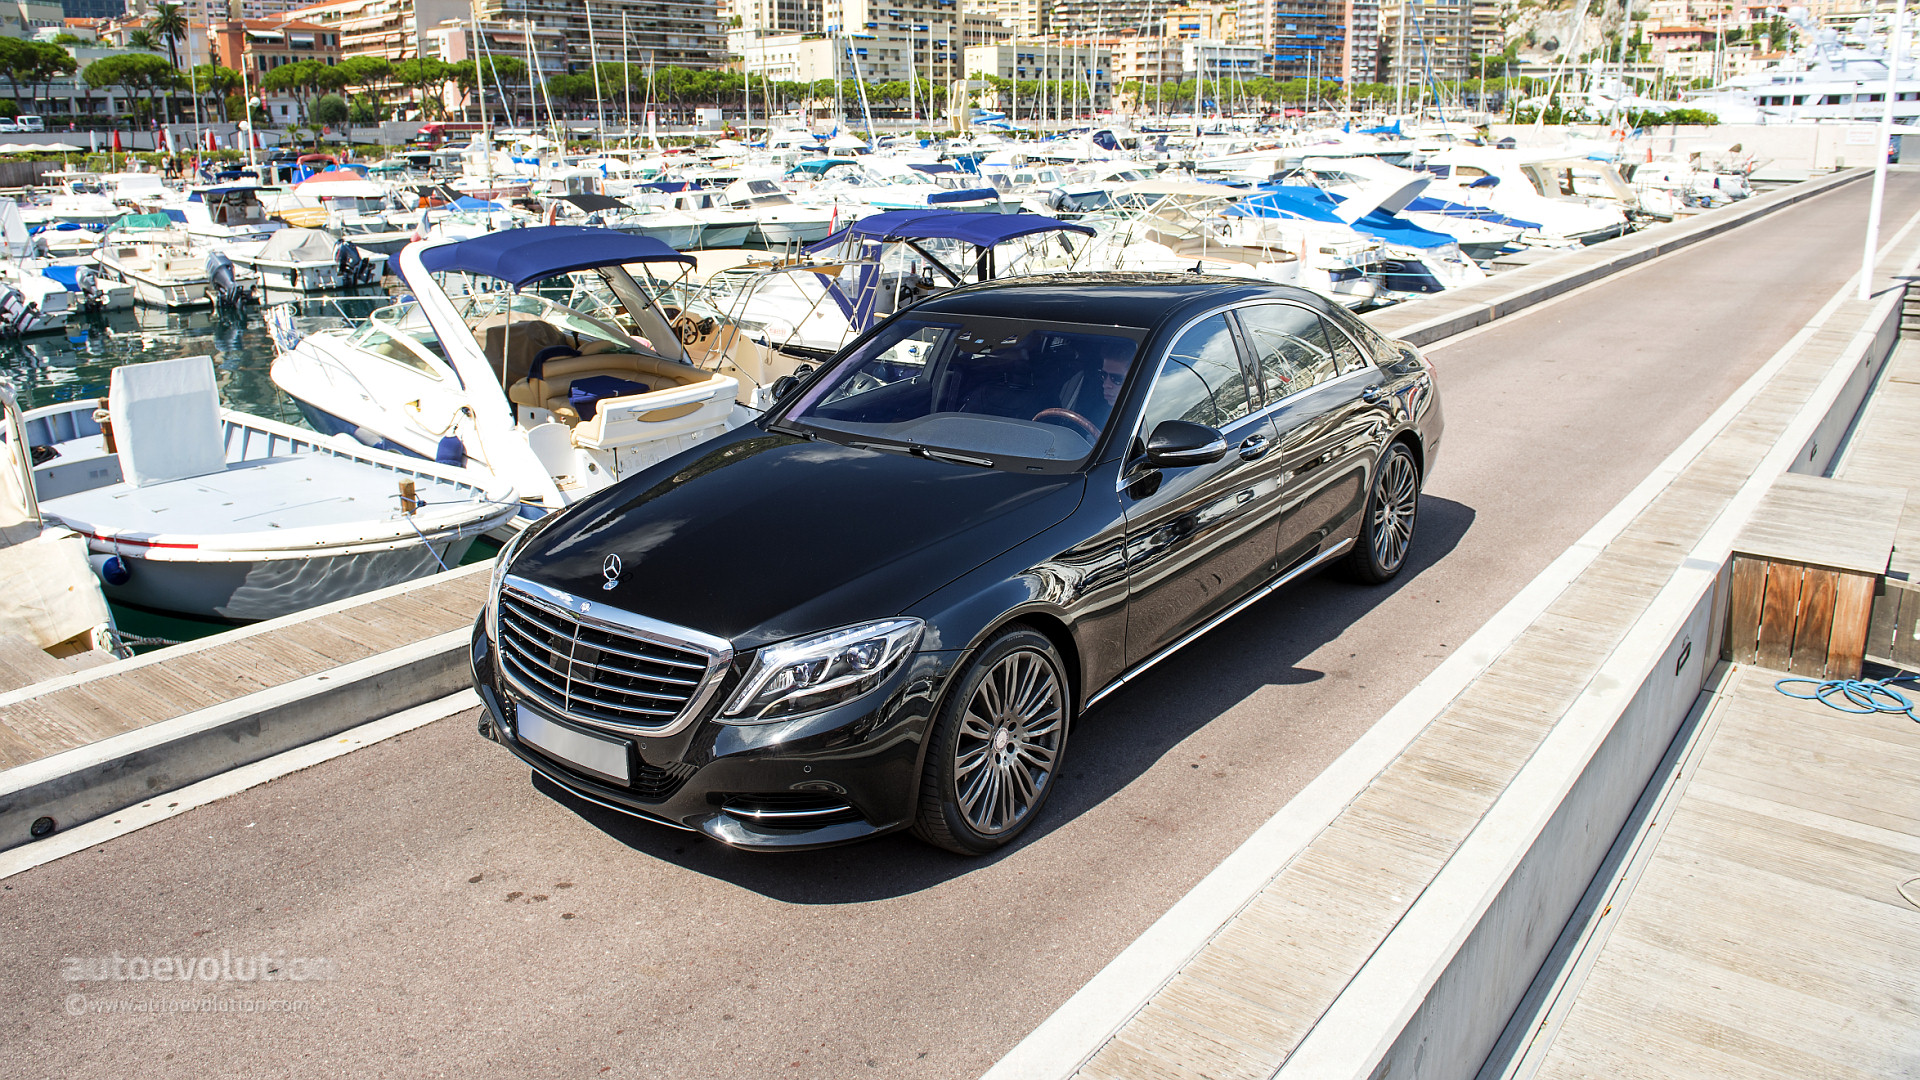 2014 mercedes benz s550 tested autoevolution for Mercedes benz ss 550